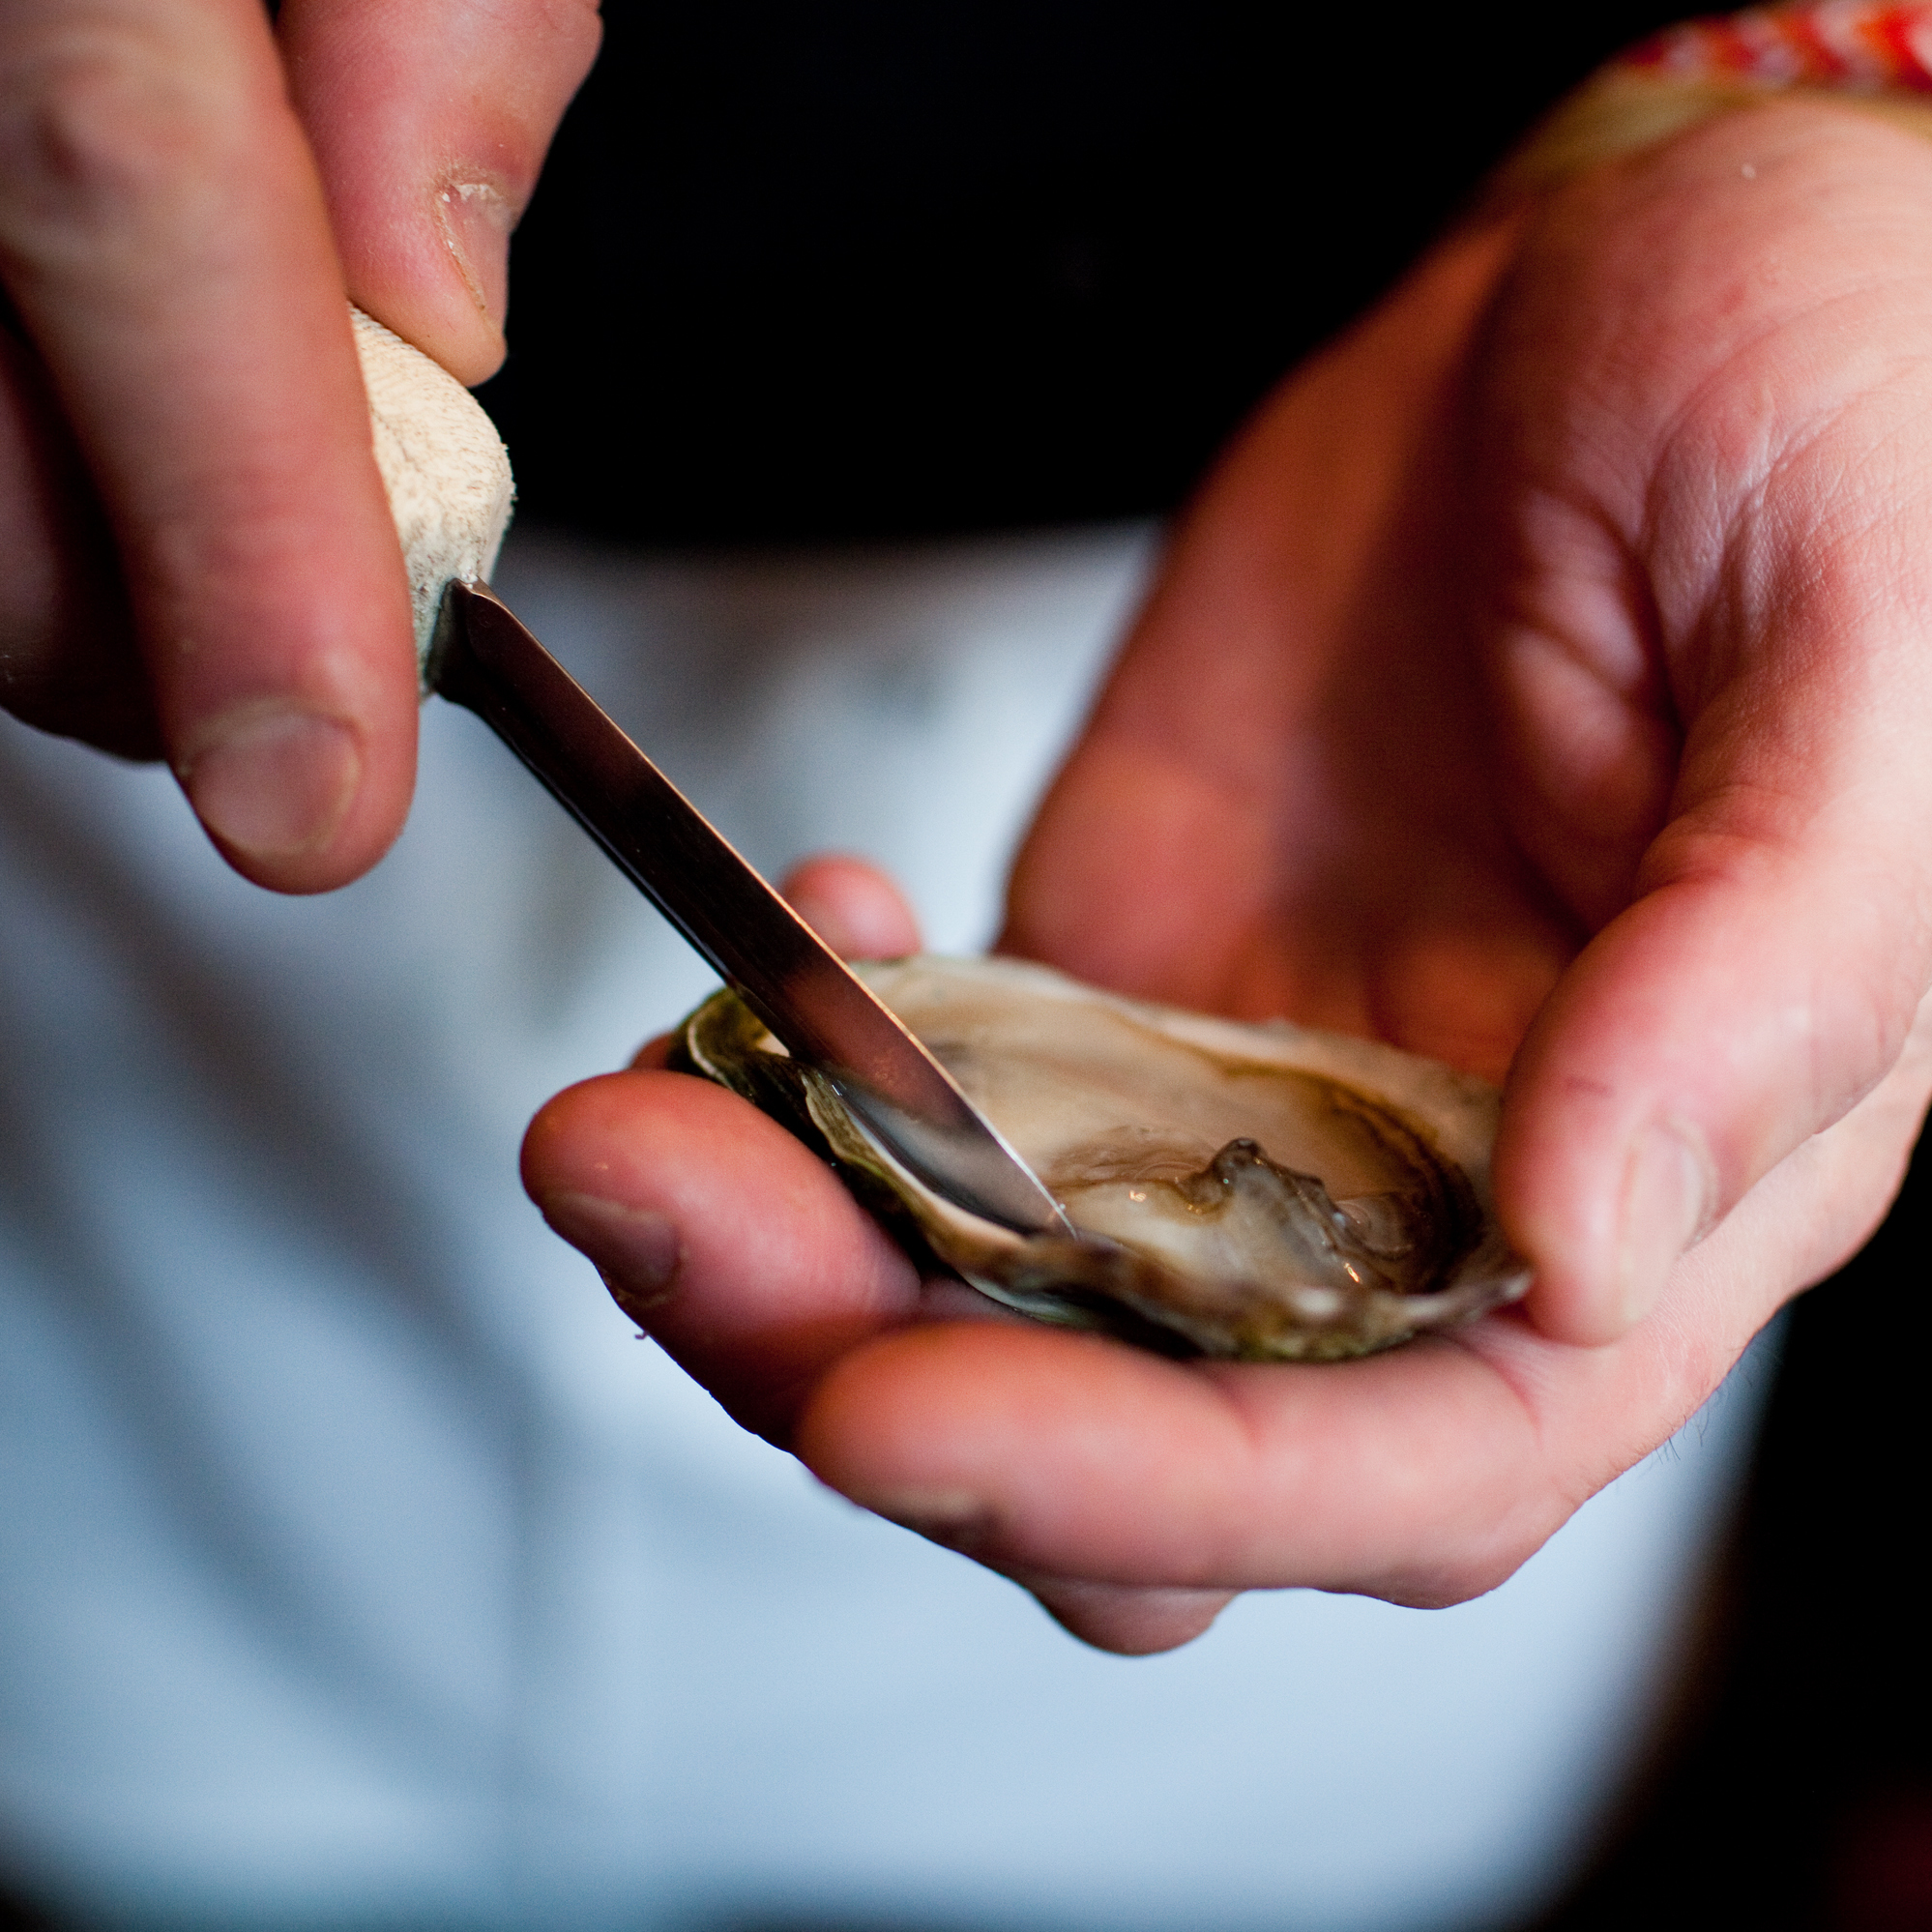 Then slice along bottom, make sure you hold steady to preserve the liquor inside. Your oyster will now slide right off.